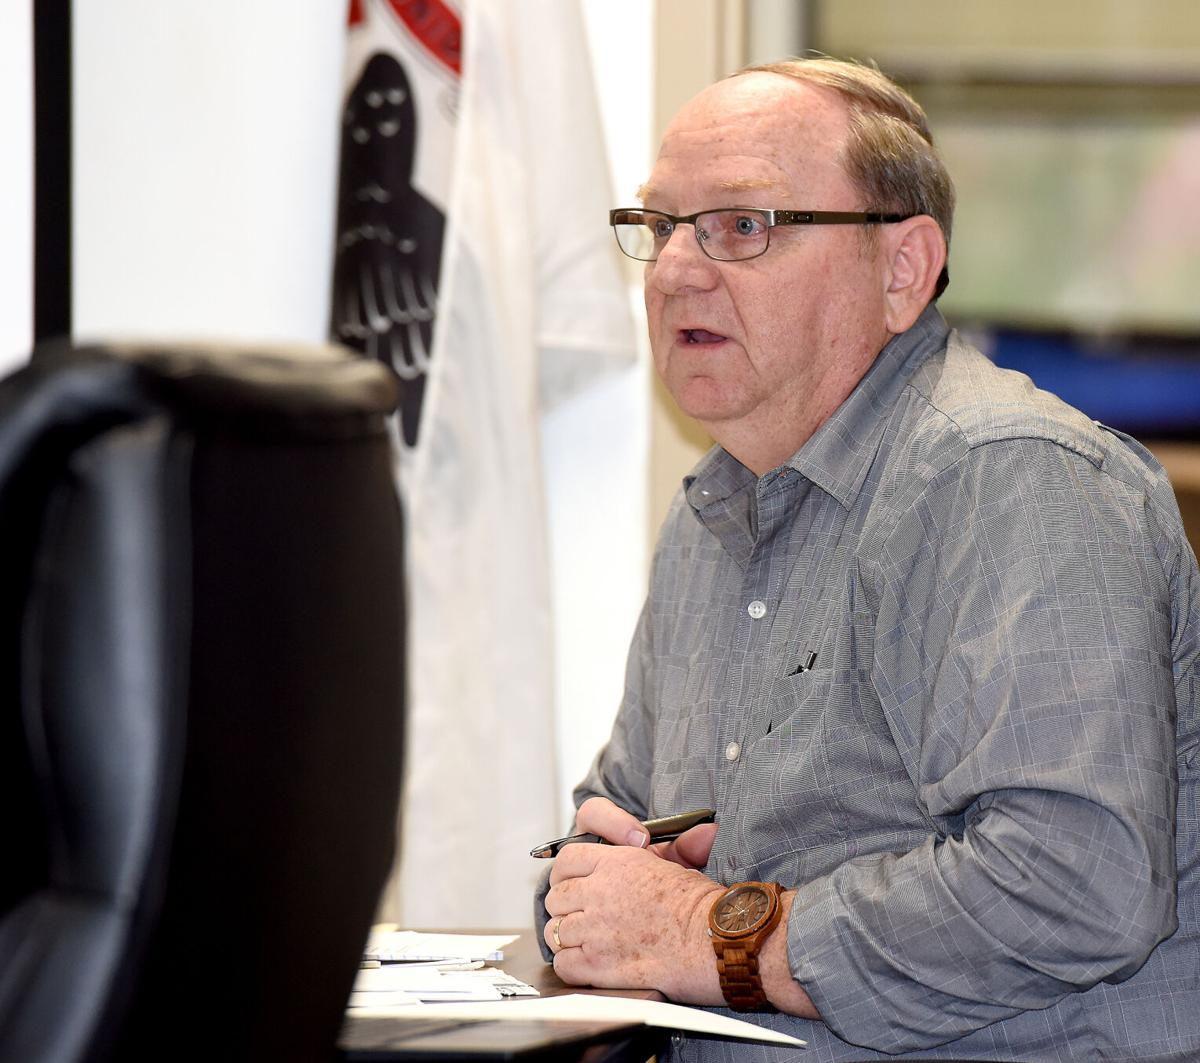 County board gets election update, recognizes 4-H